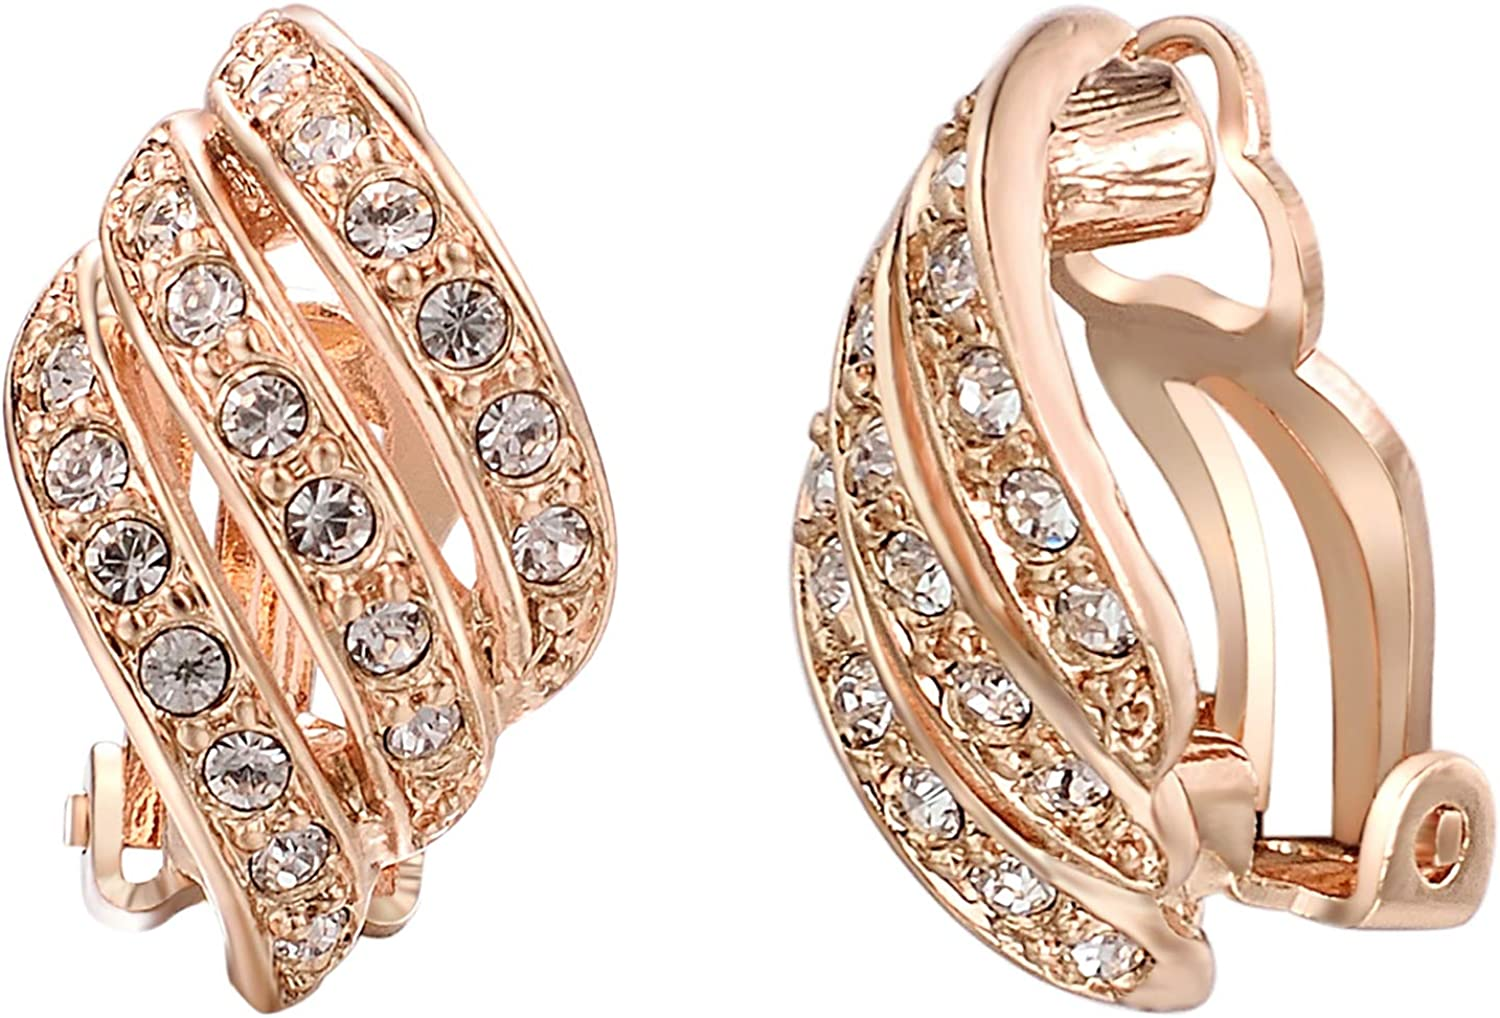 Yoursfs Cz Crystal Clip on Earrings for Women 18K Gold Plated Vintage Rhinestone Clip on Earrings Wedding Jewelry for Bridal